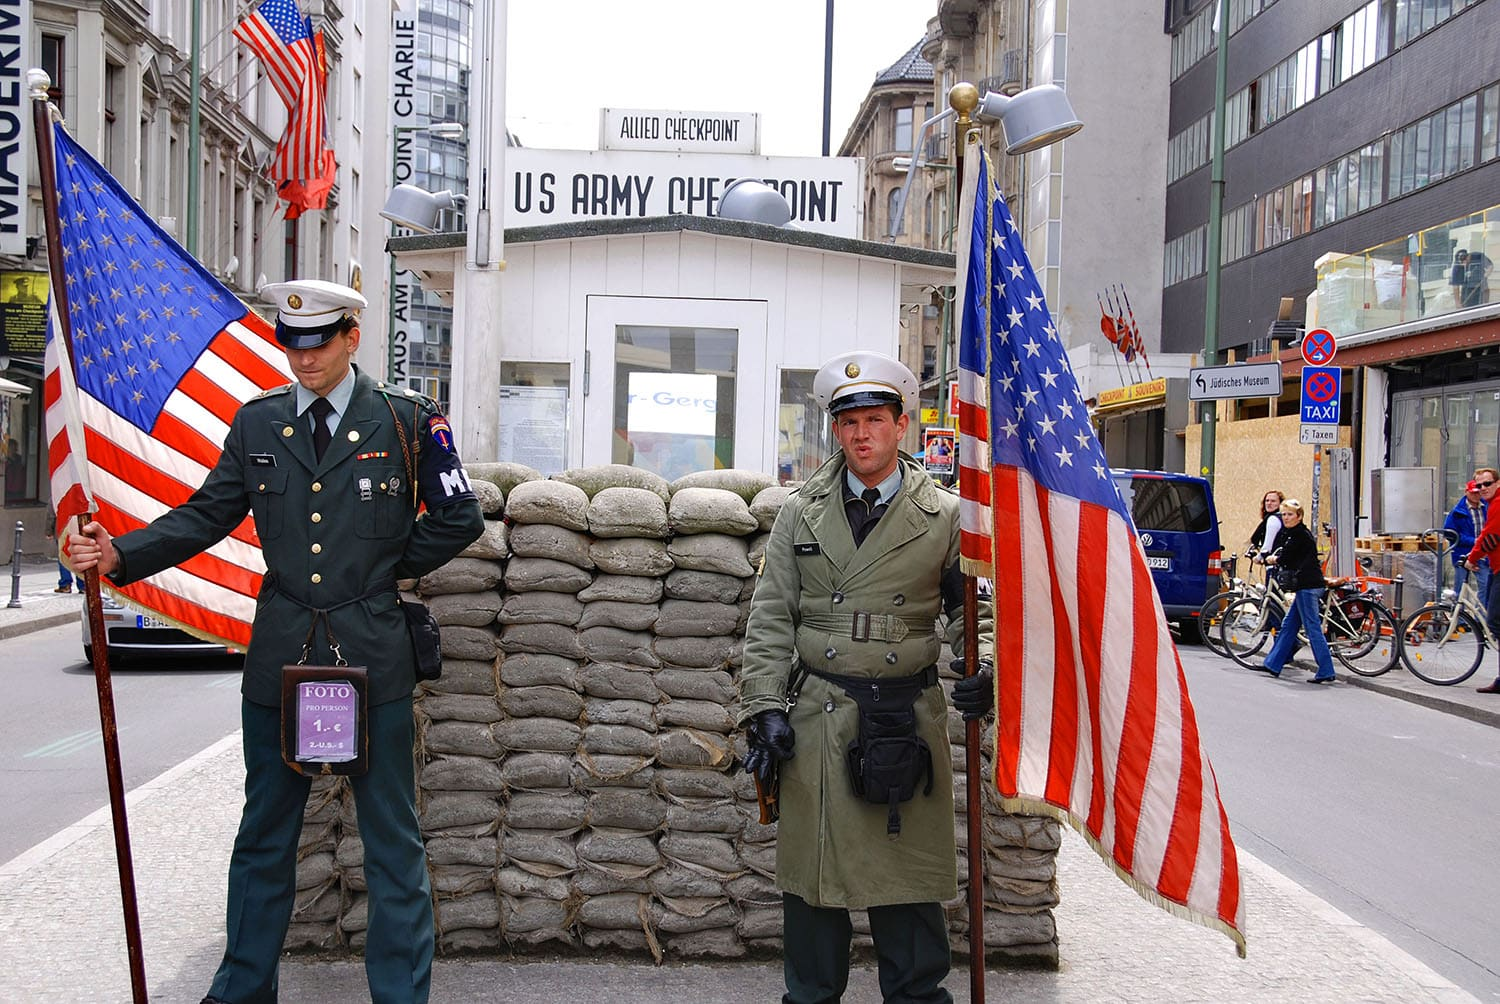 Visiter Berlin en 3 jours - Check Point Charlie